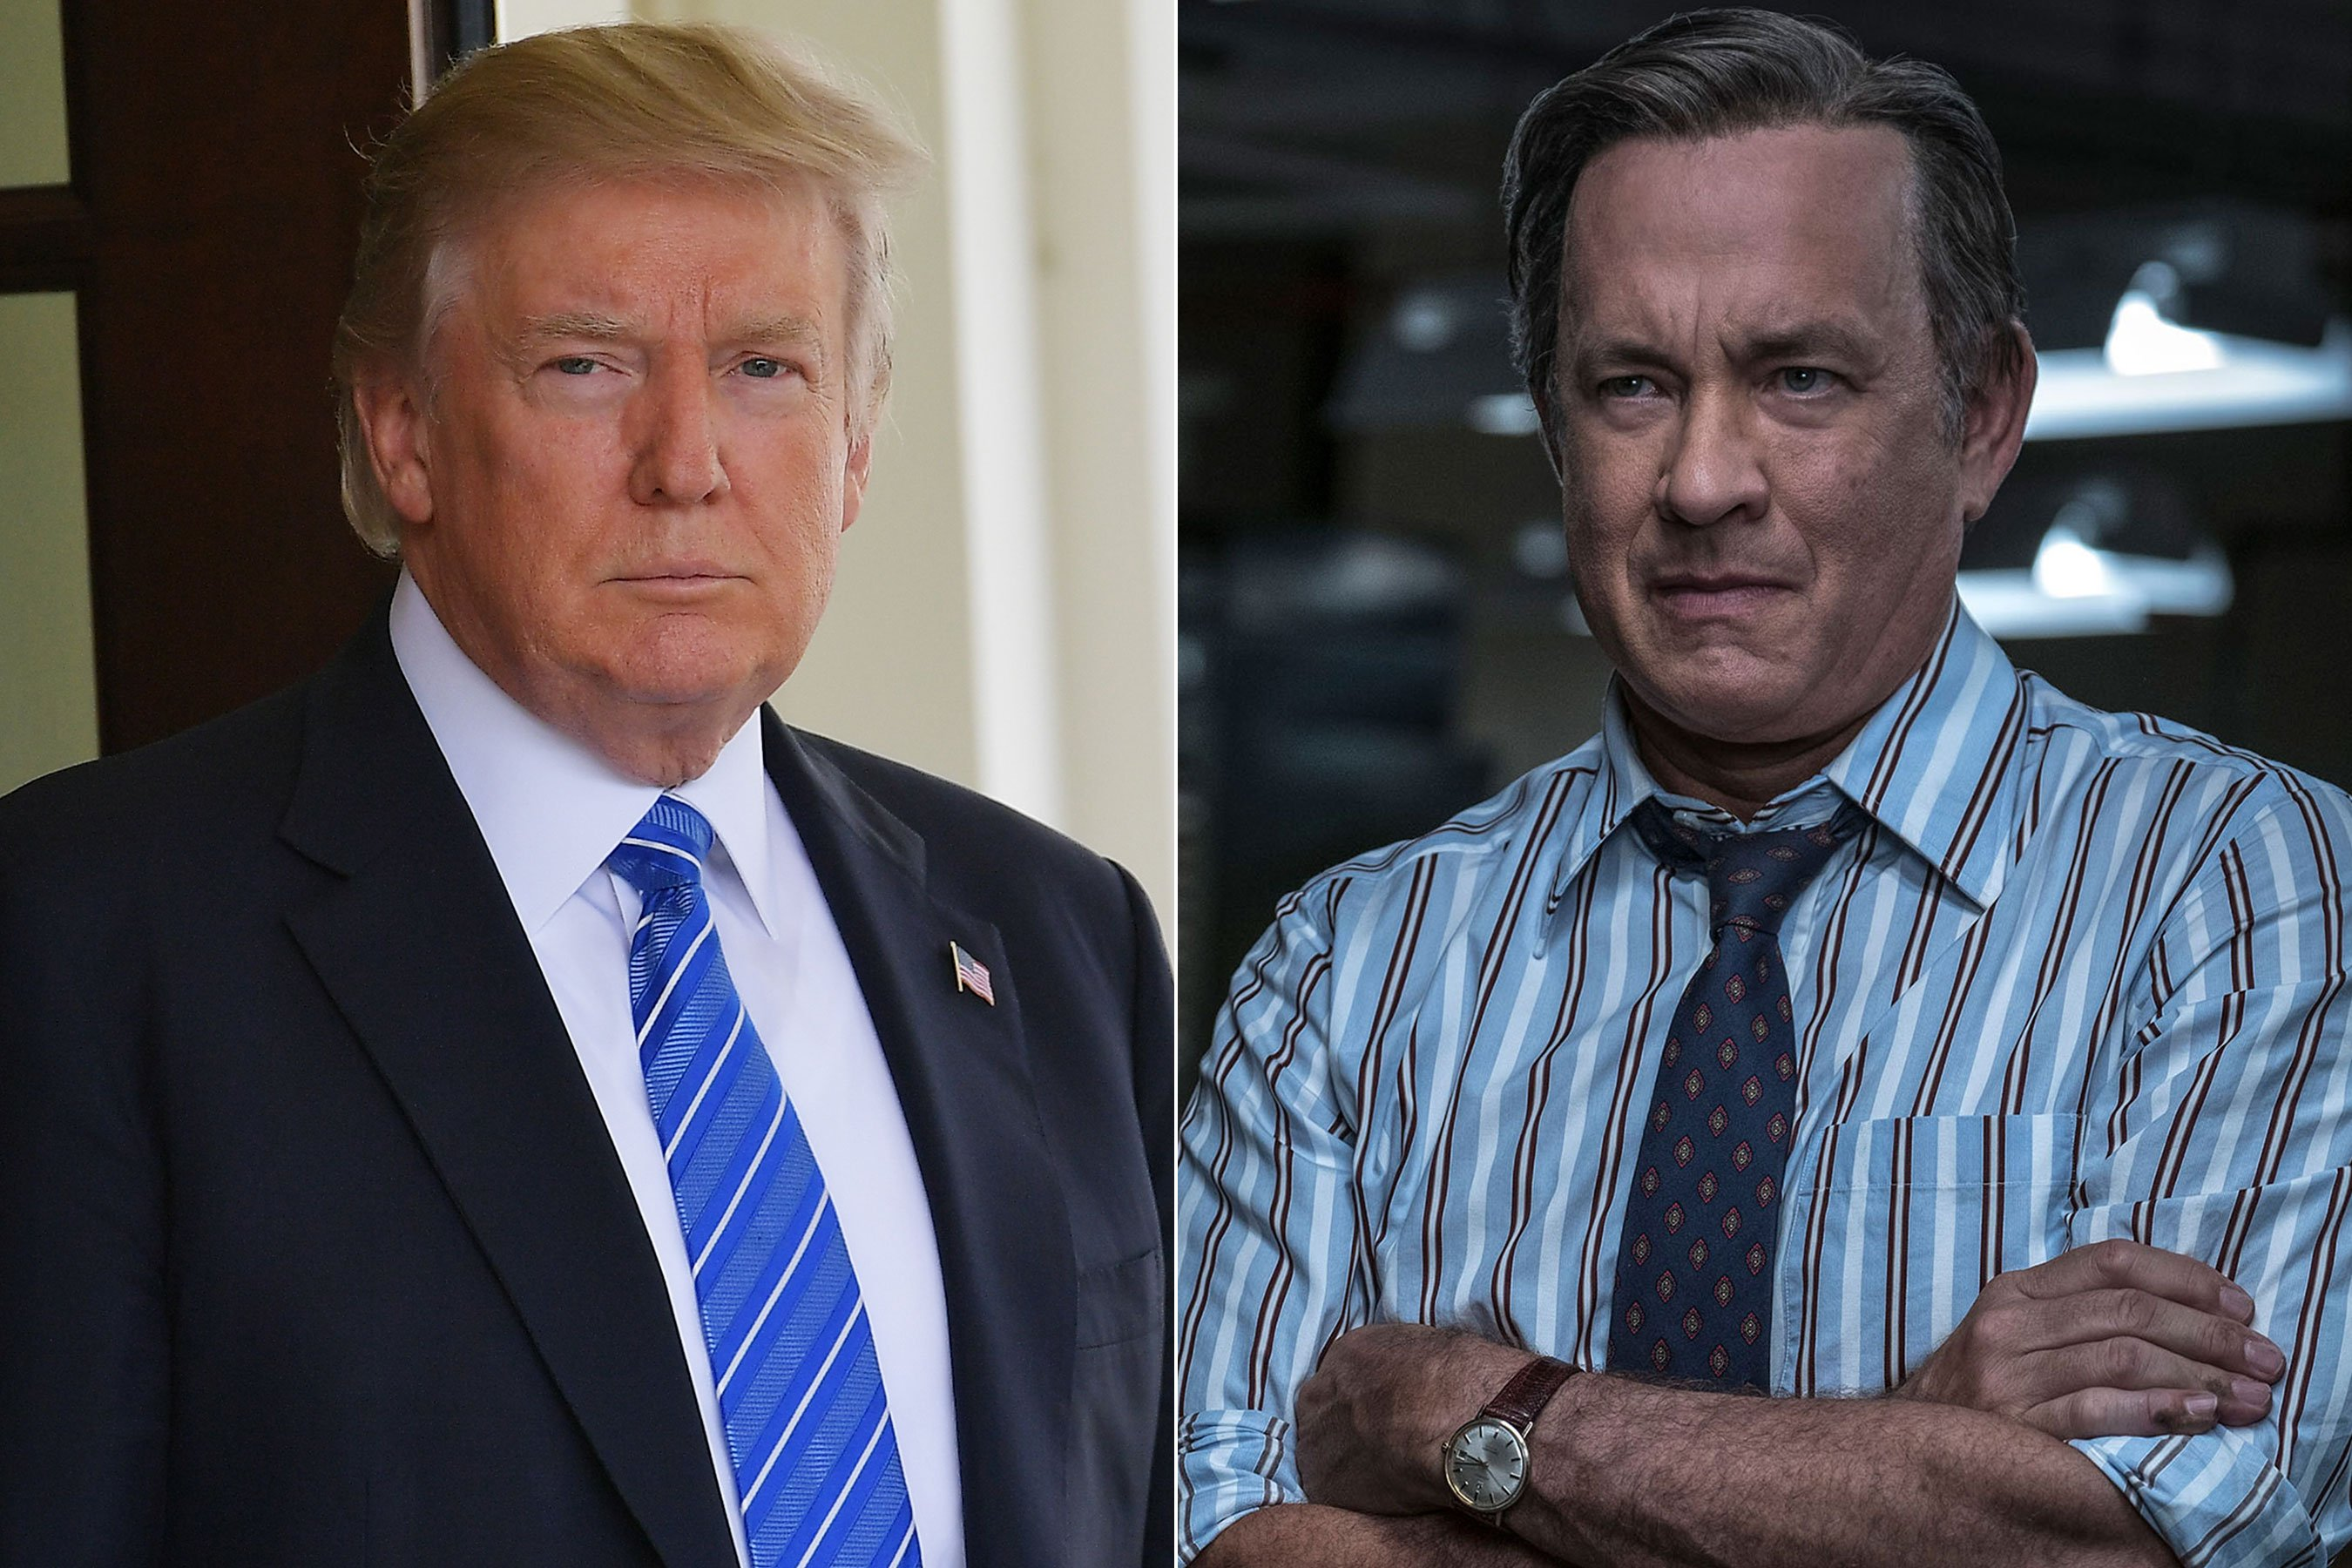 Trump White House asks to screen The Post